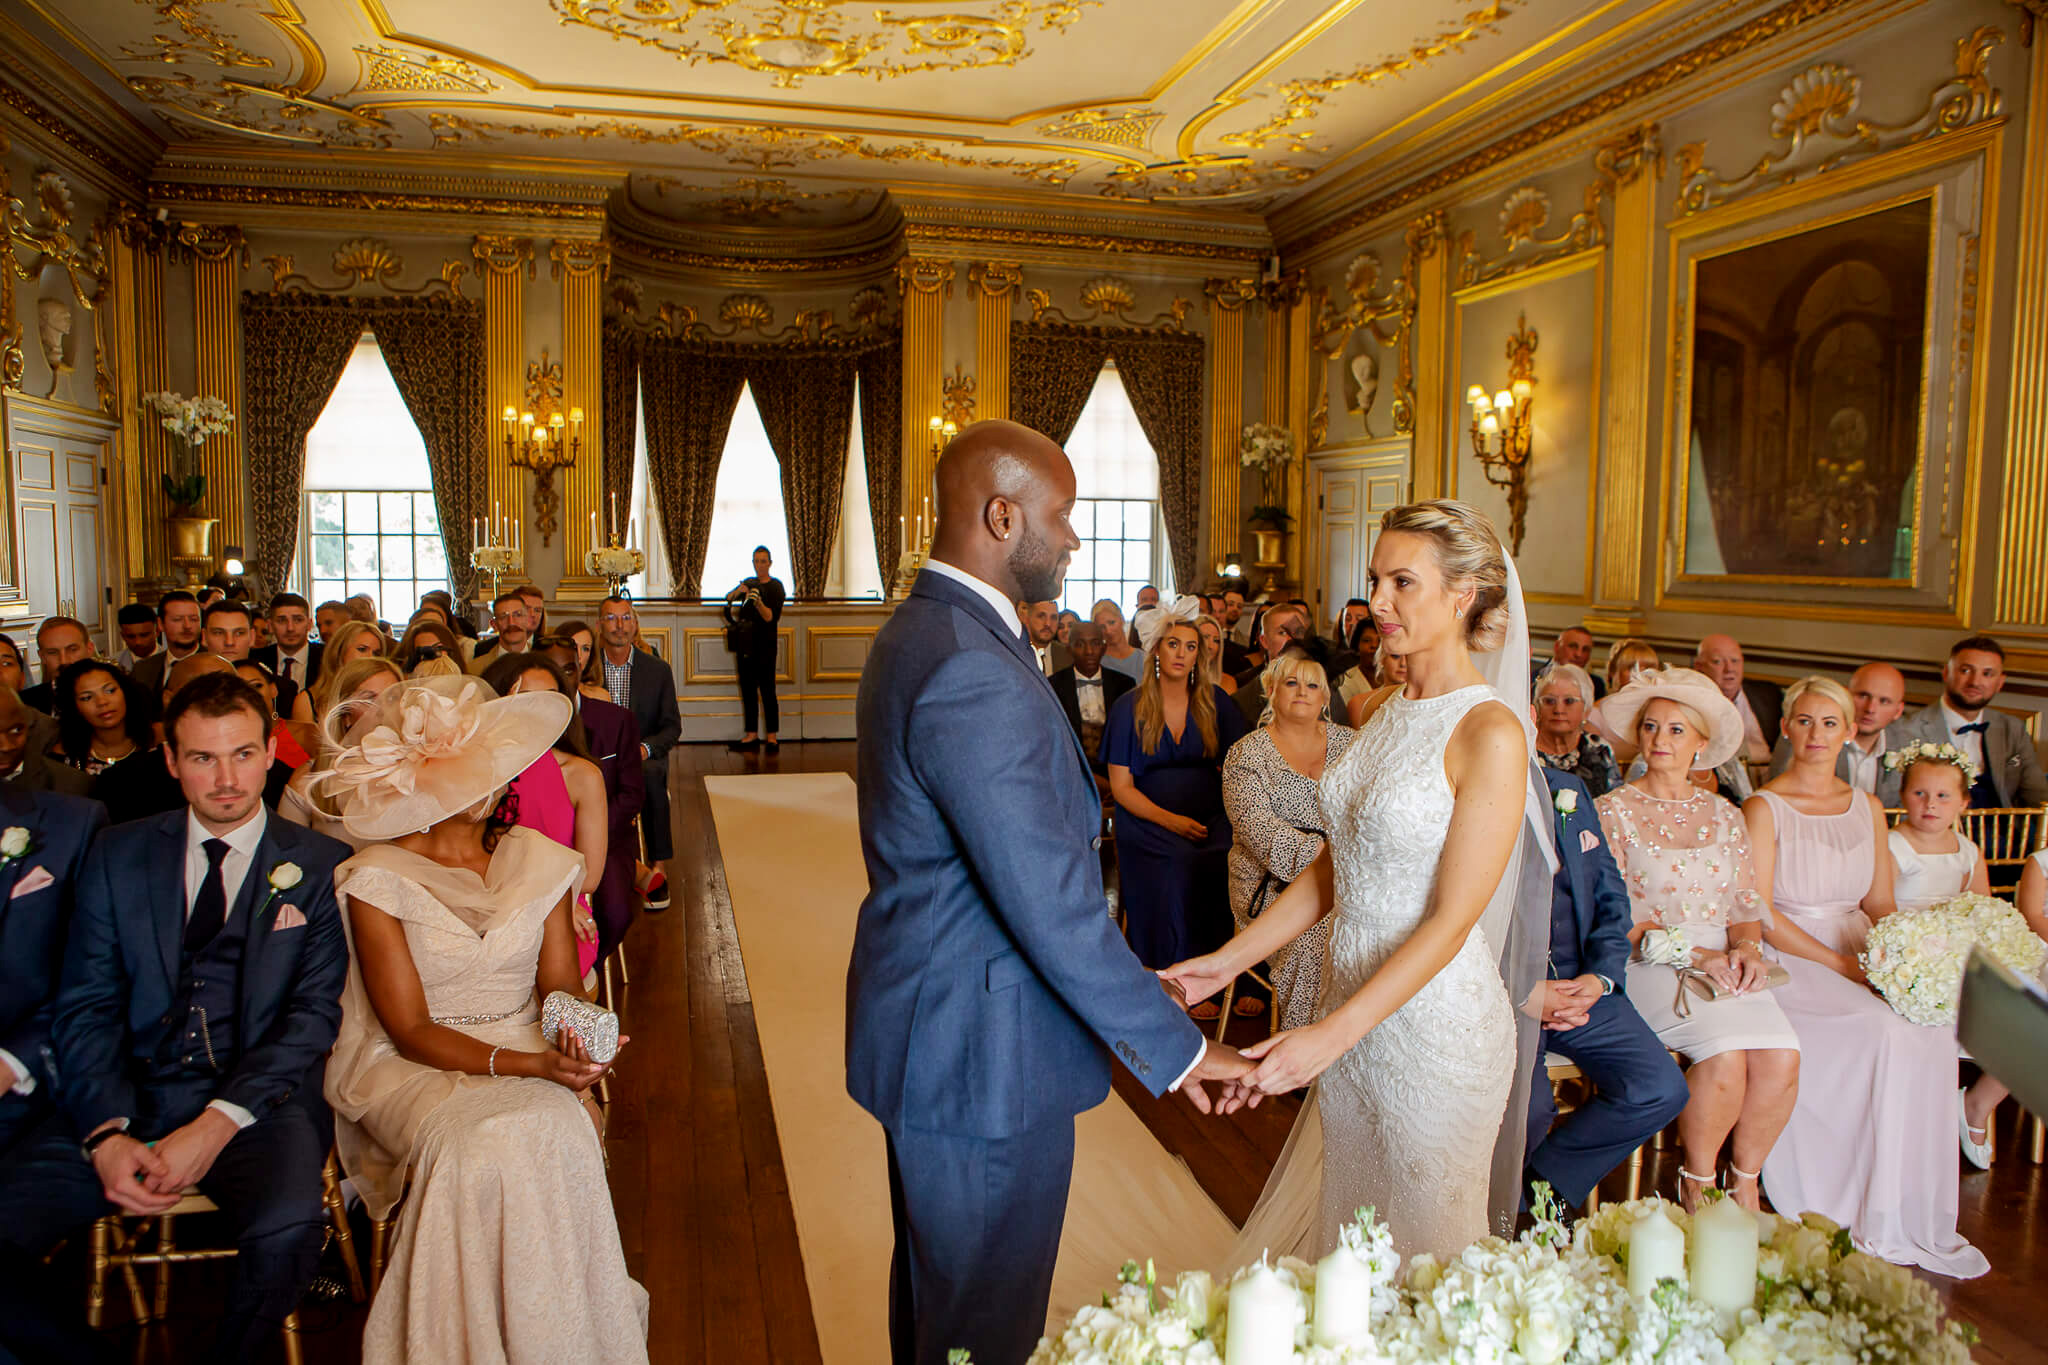 knowsley-hall-wedding-stanbury-photography-016